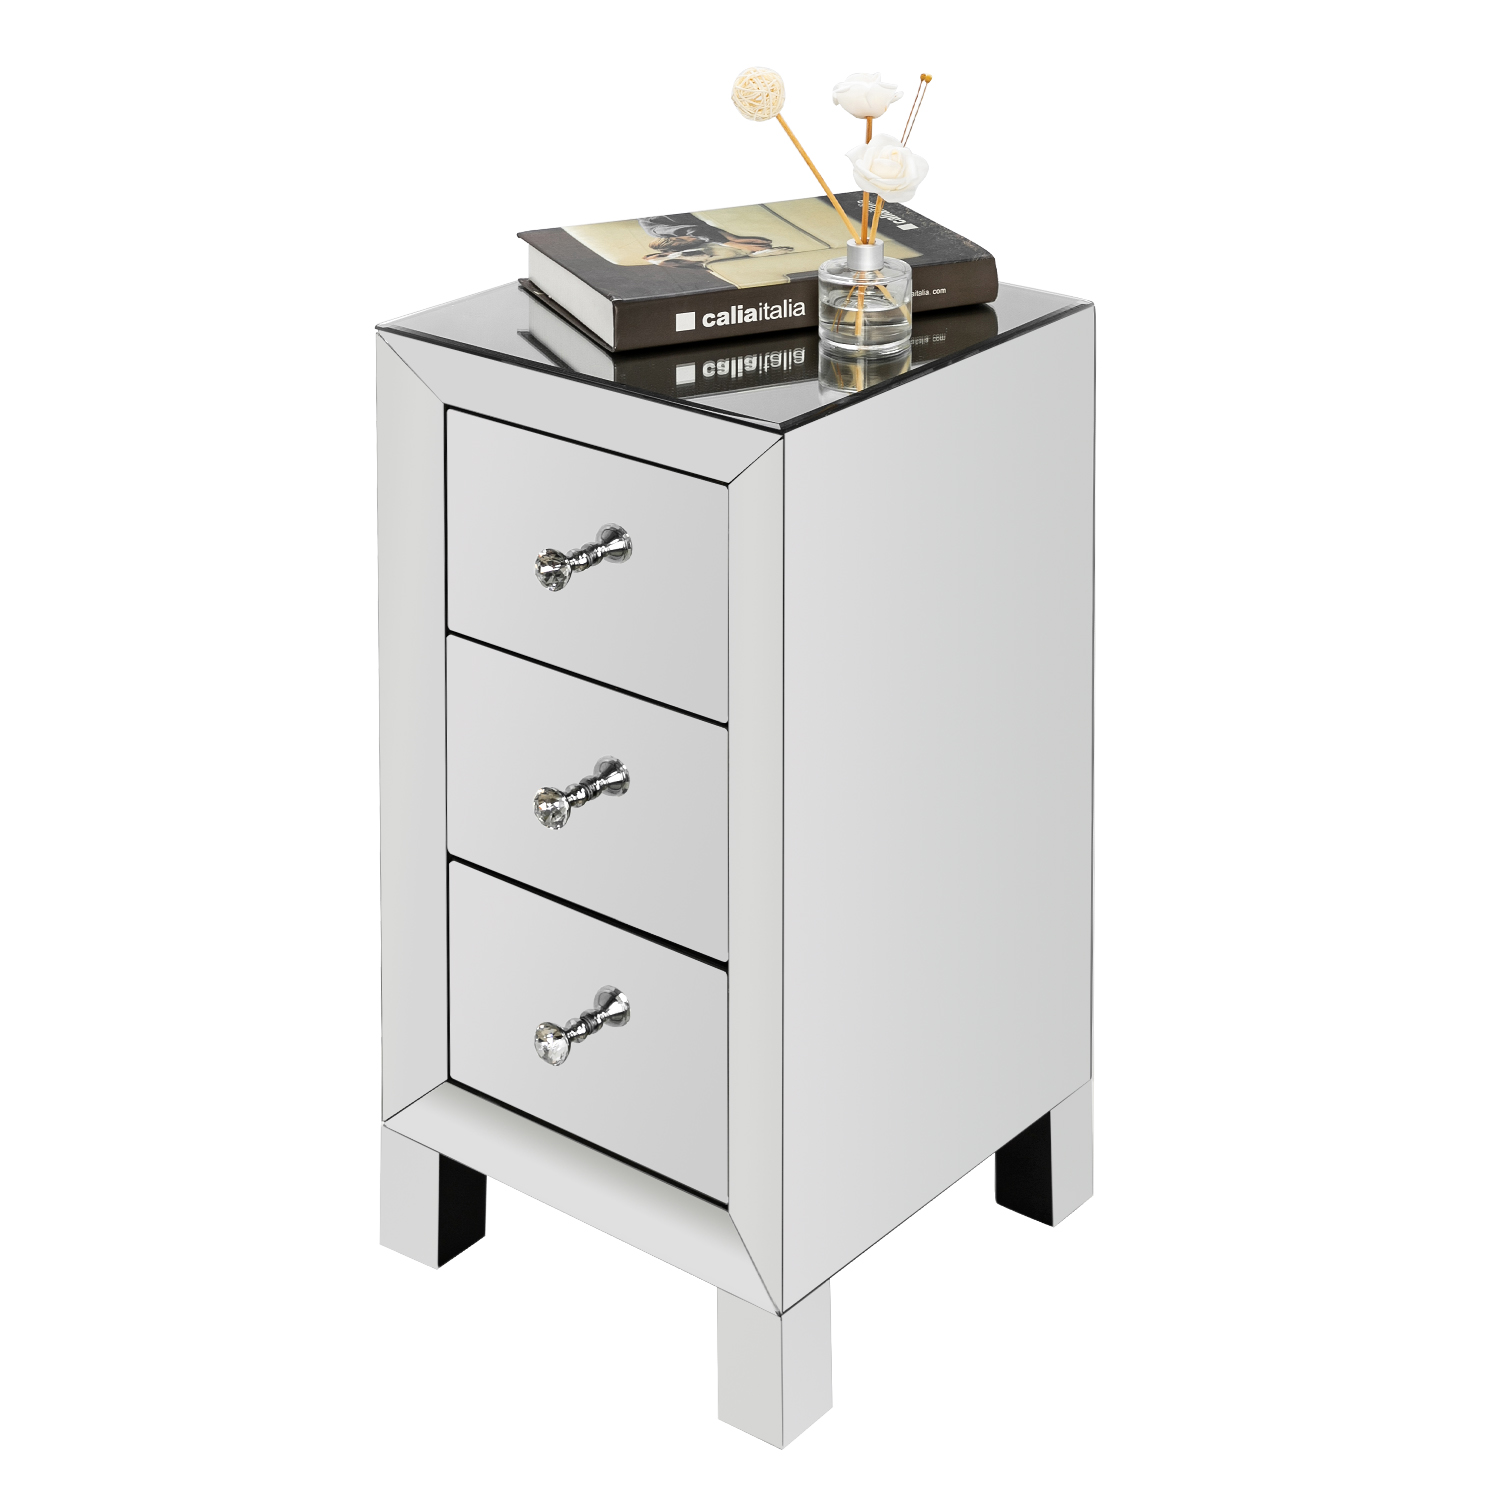 Details About 3 Drawer Mirrored End Table Modern Style Nightstand Storage Sofa Table Silver